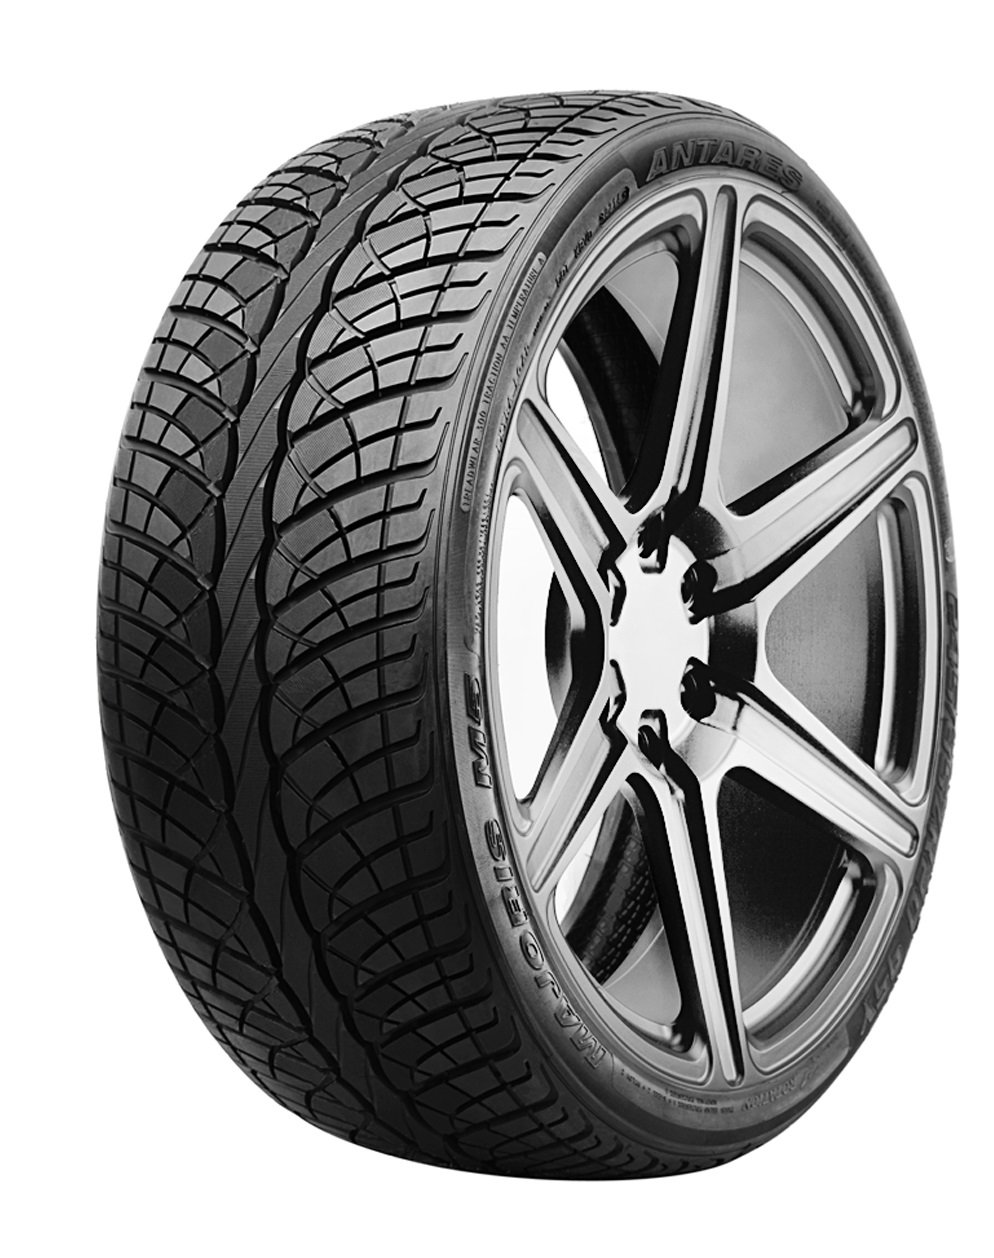 Antares MAJORIS M5 Performance Radial Tire - 295/45R20 114W 10348209